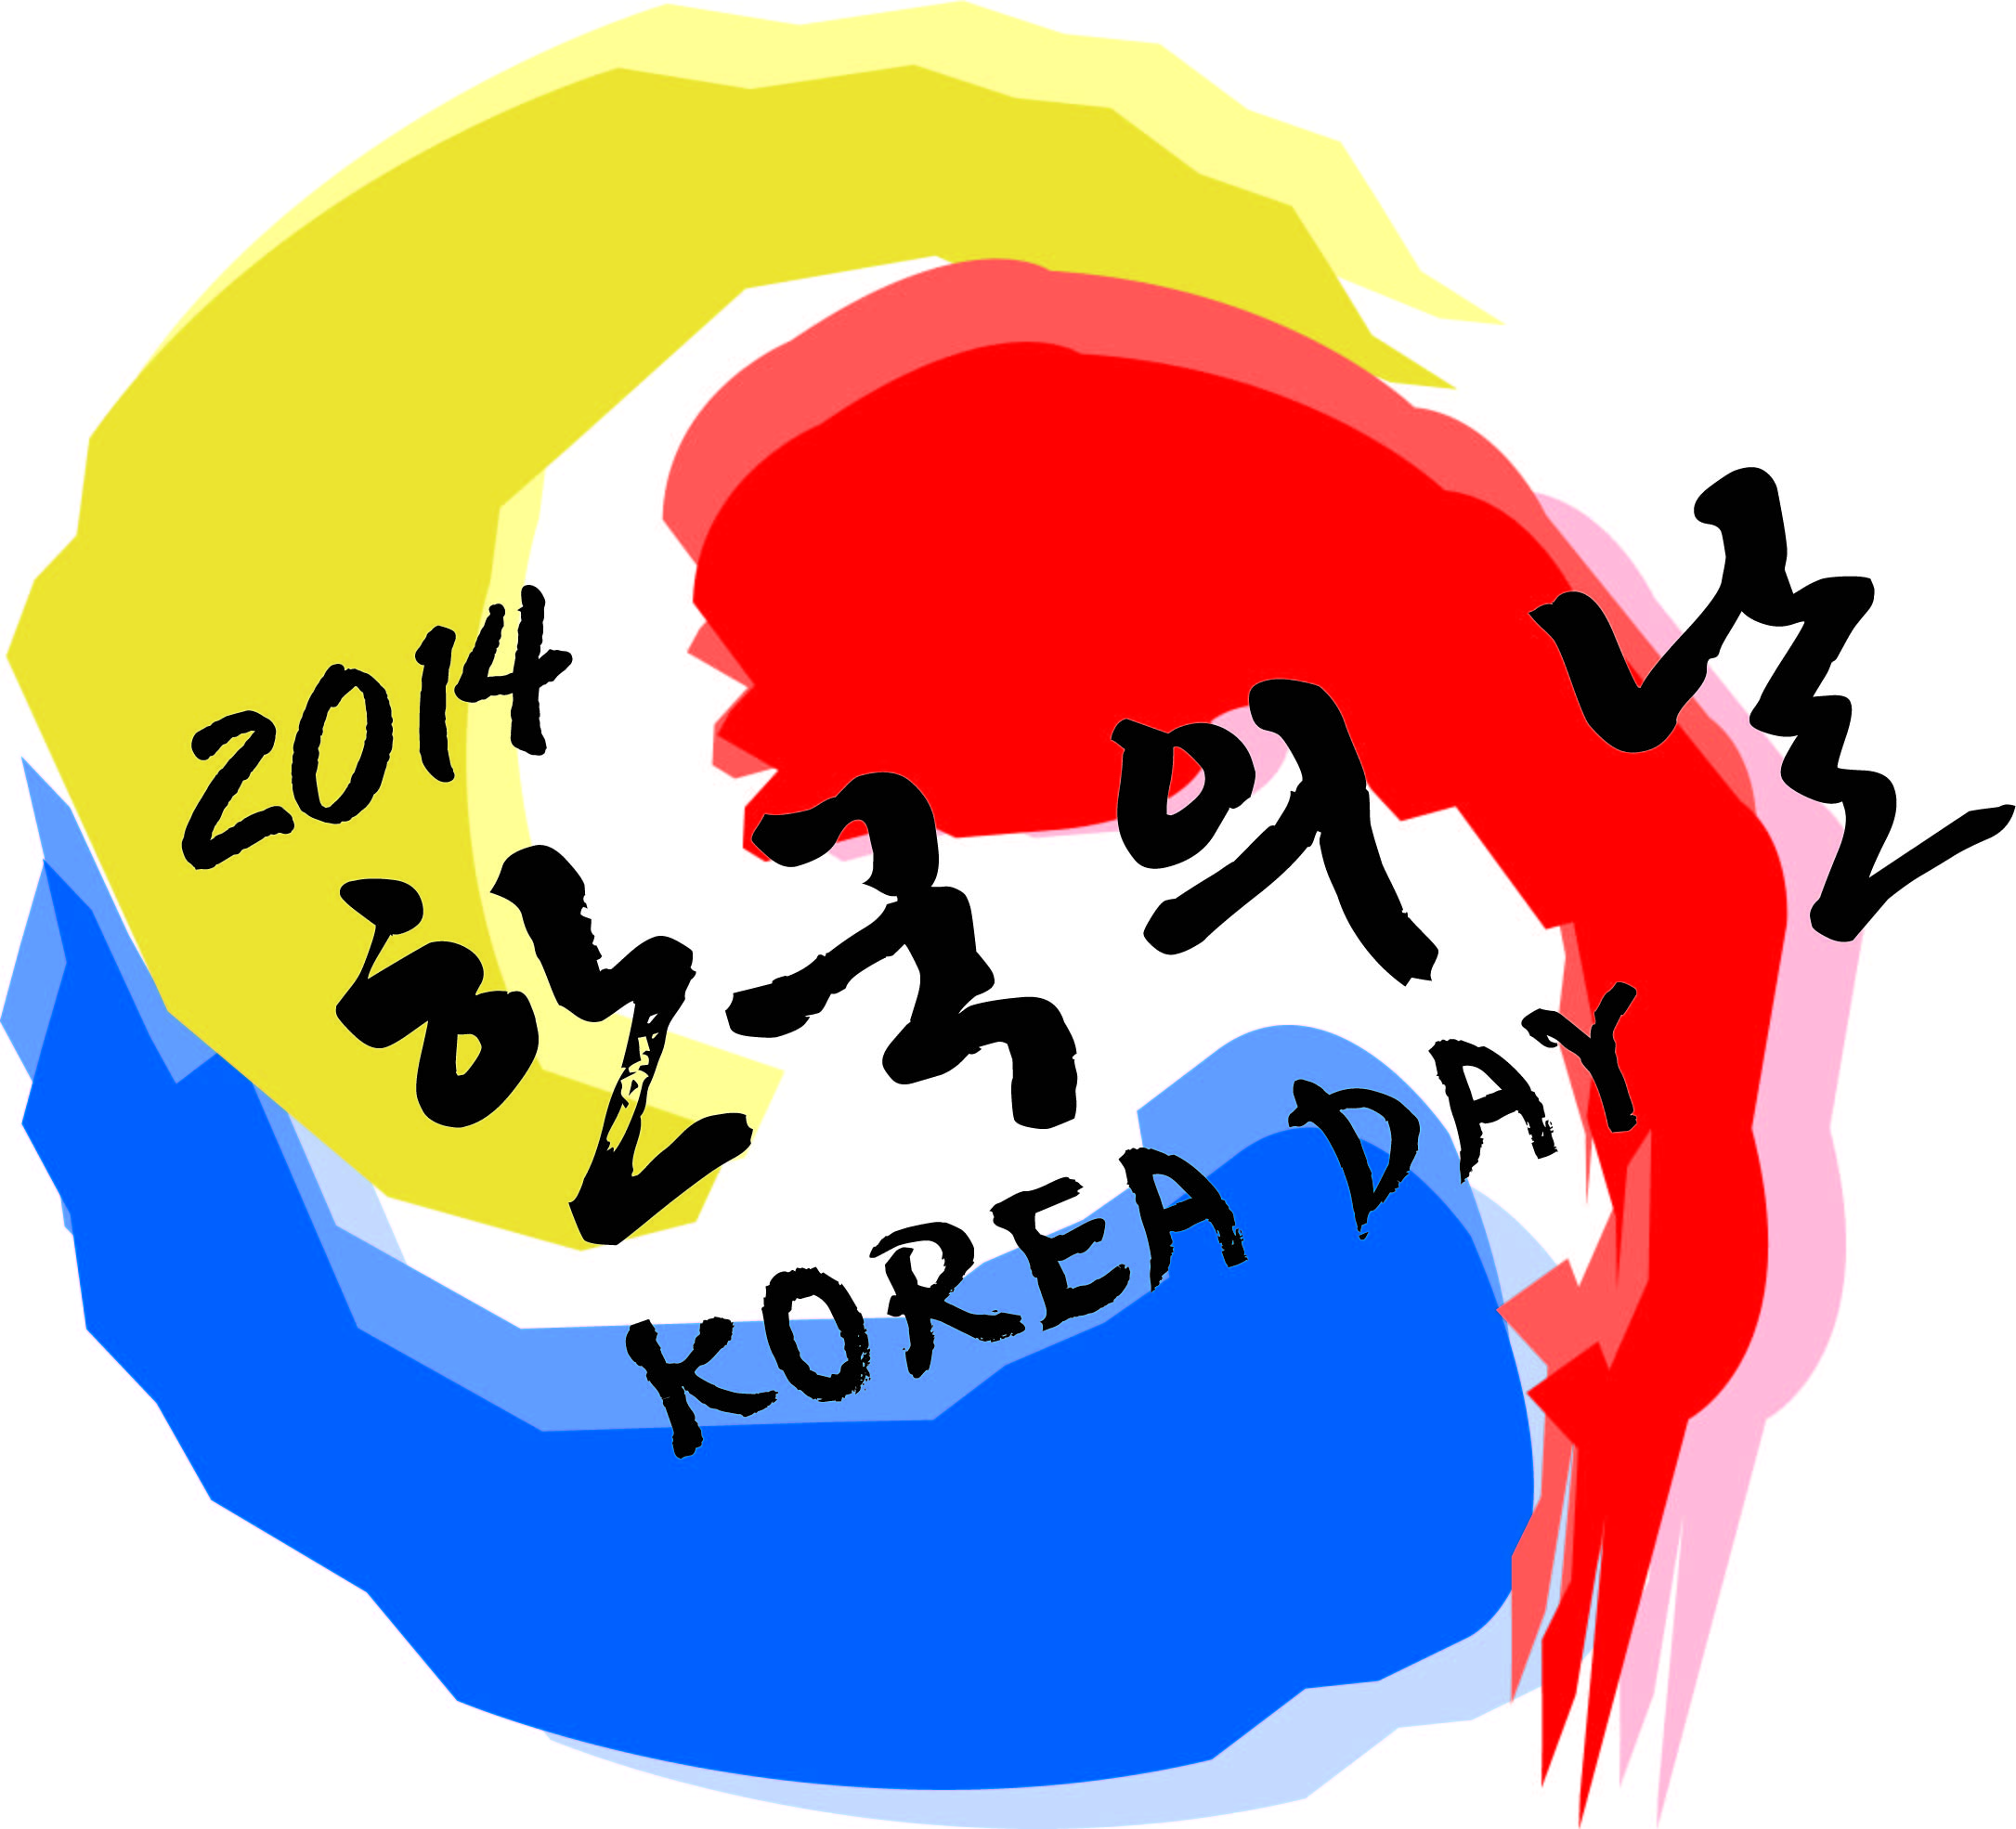 Korea Day logo